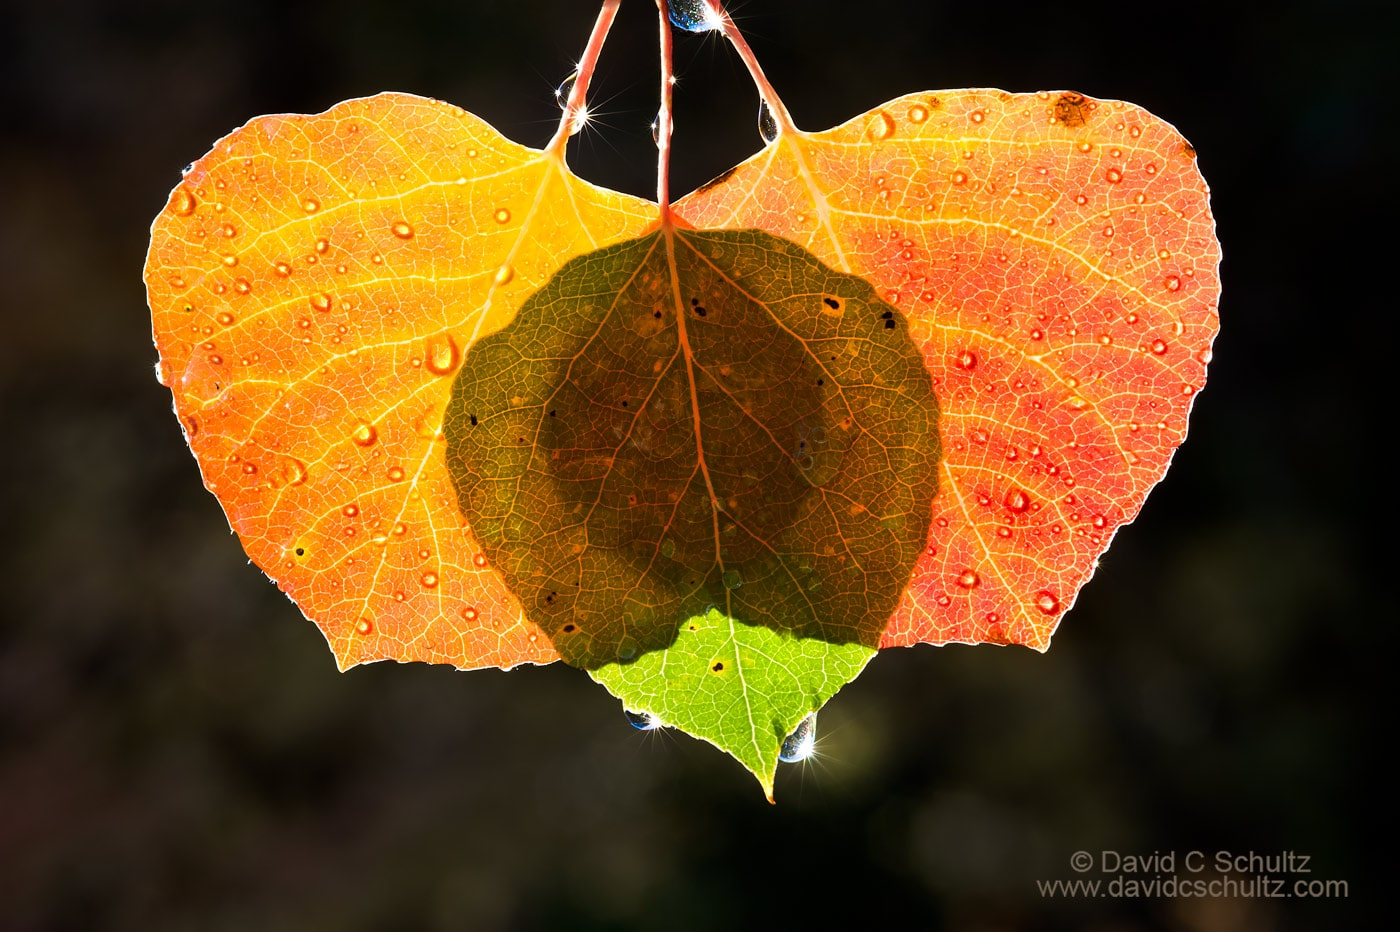 Back-lit aspen leaves in the fall - Image #191-142